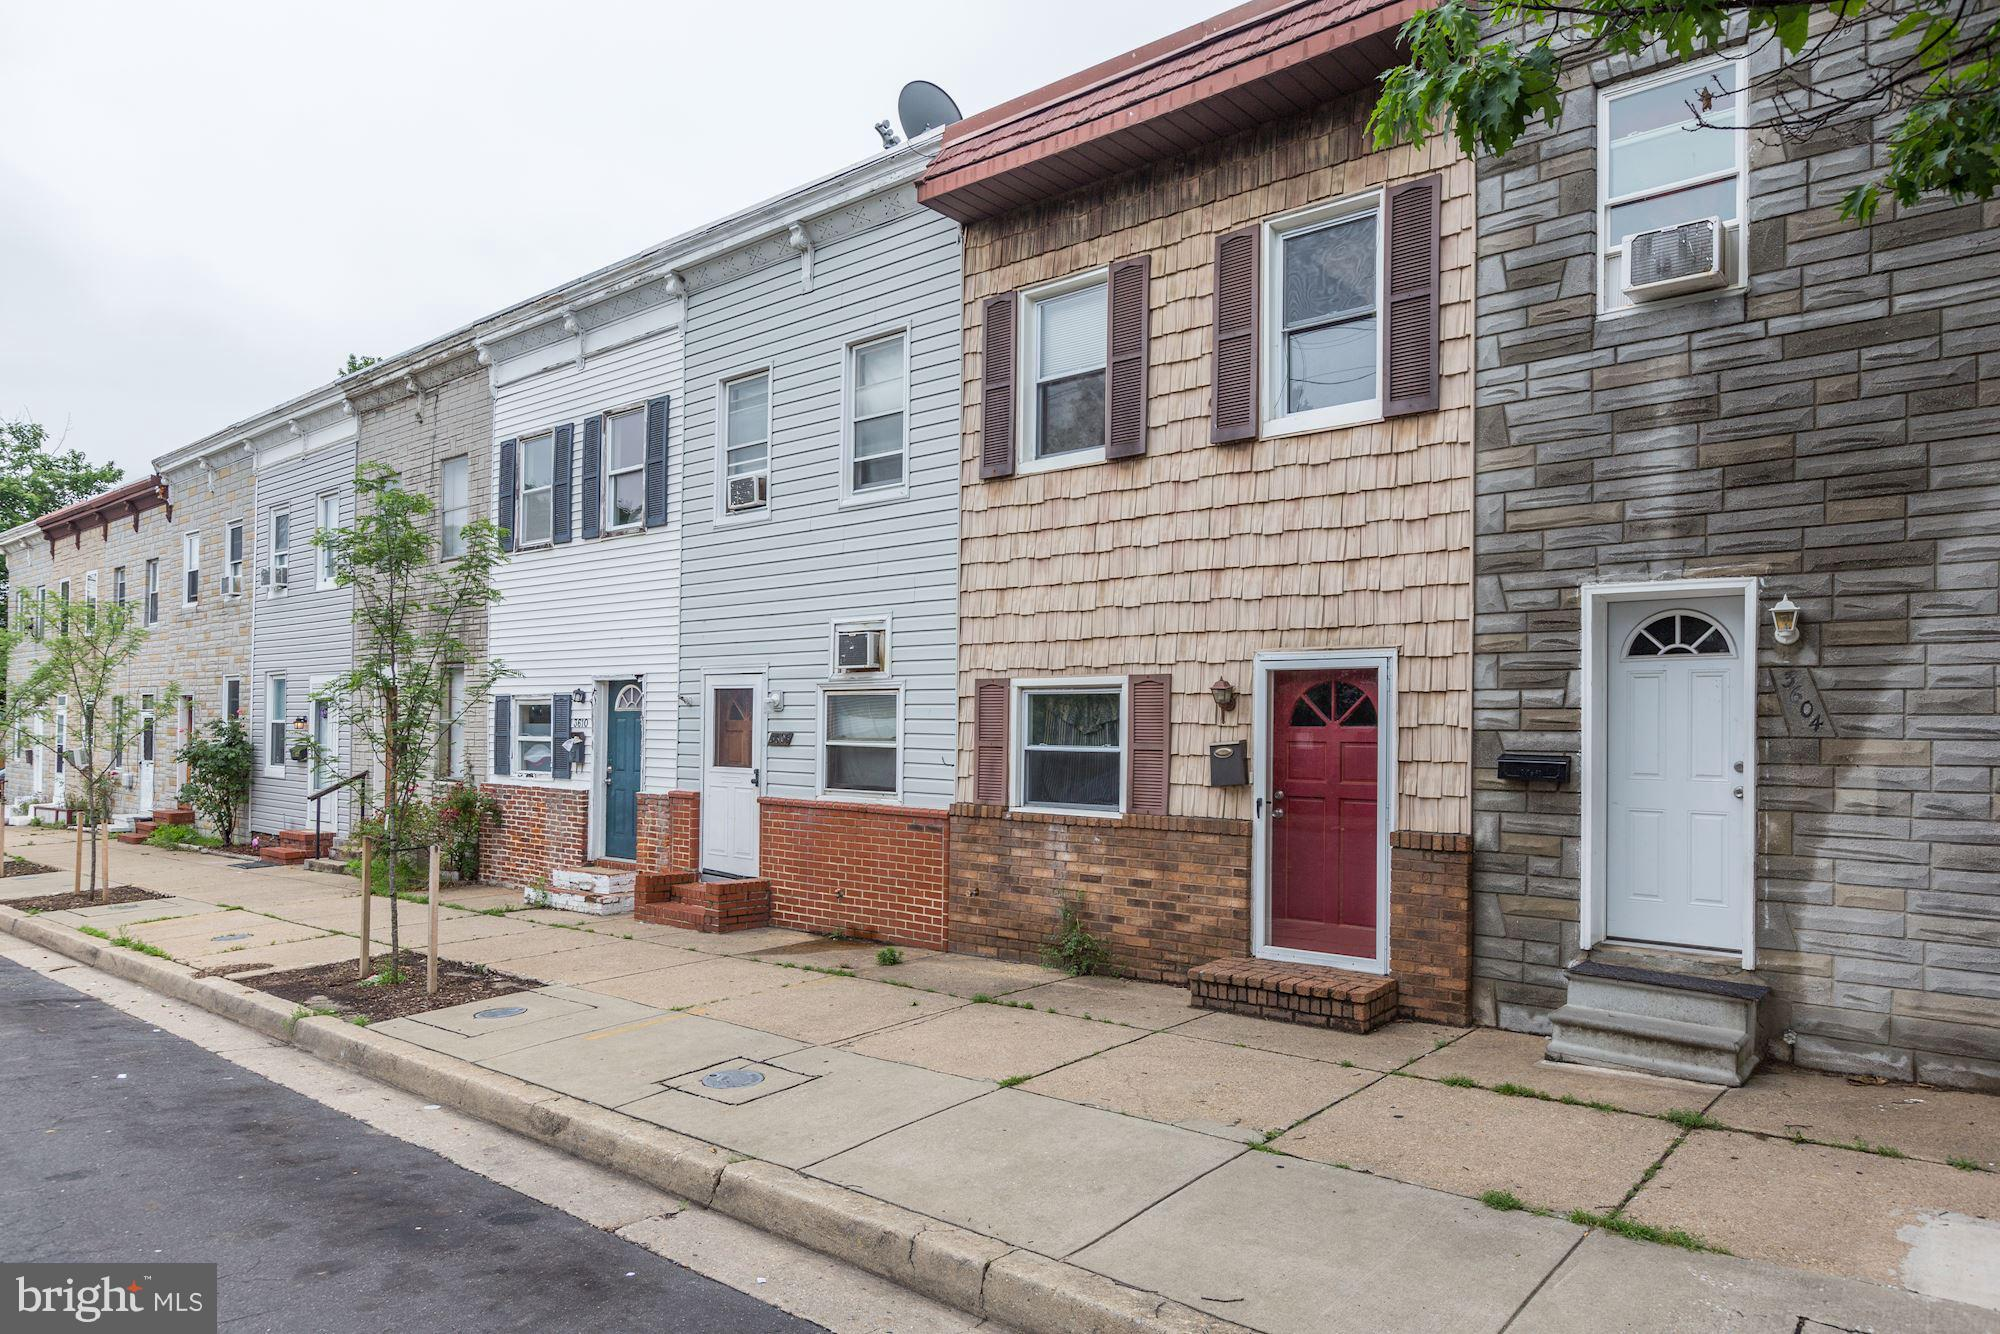 3606 2ND St, Baltimore, MD, 21225